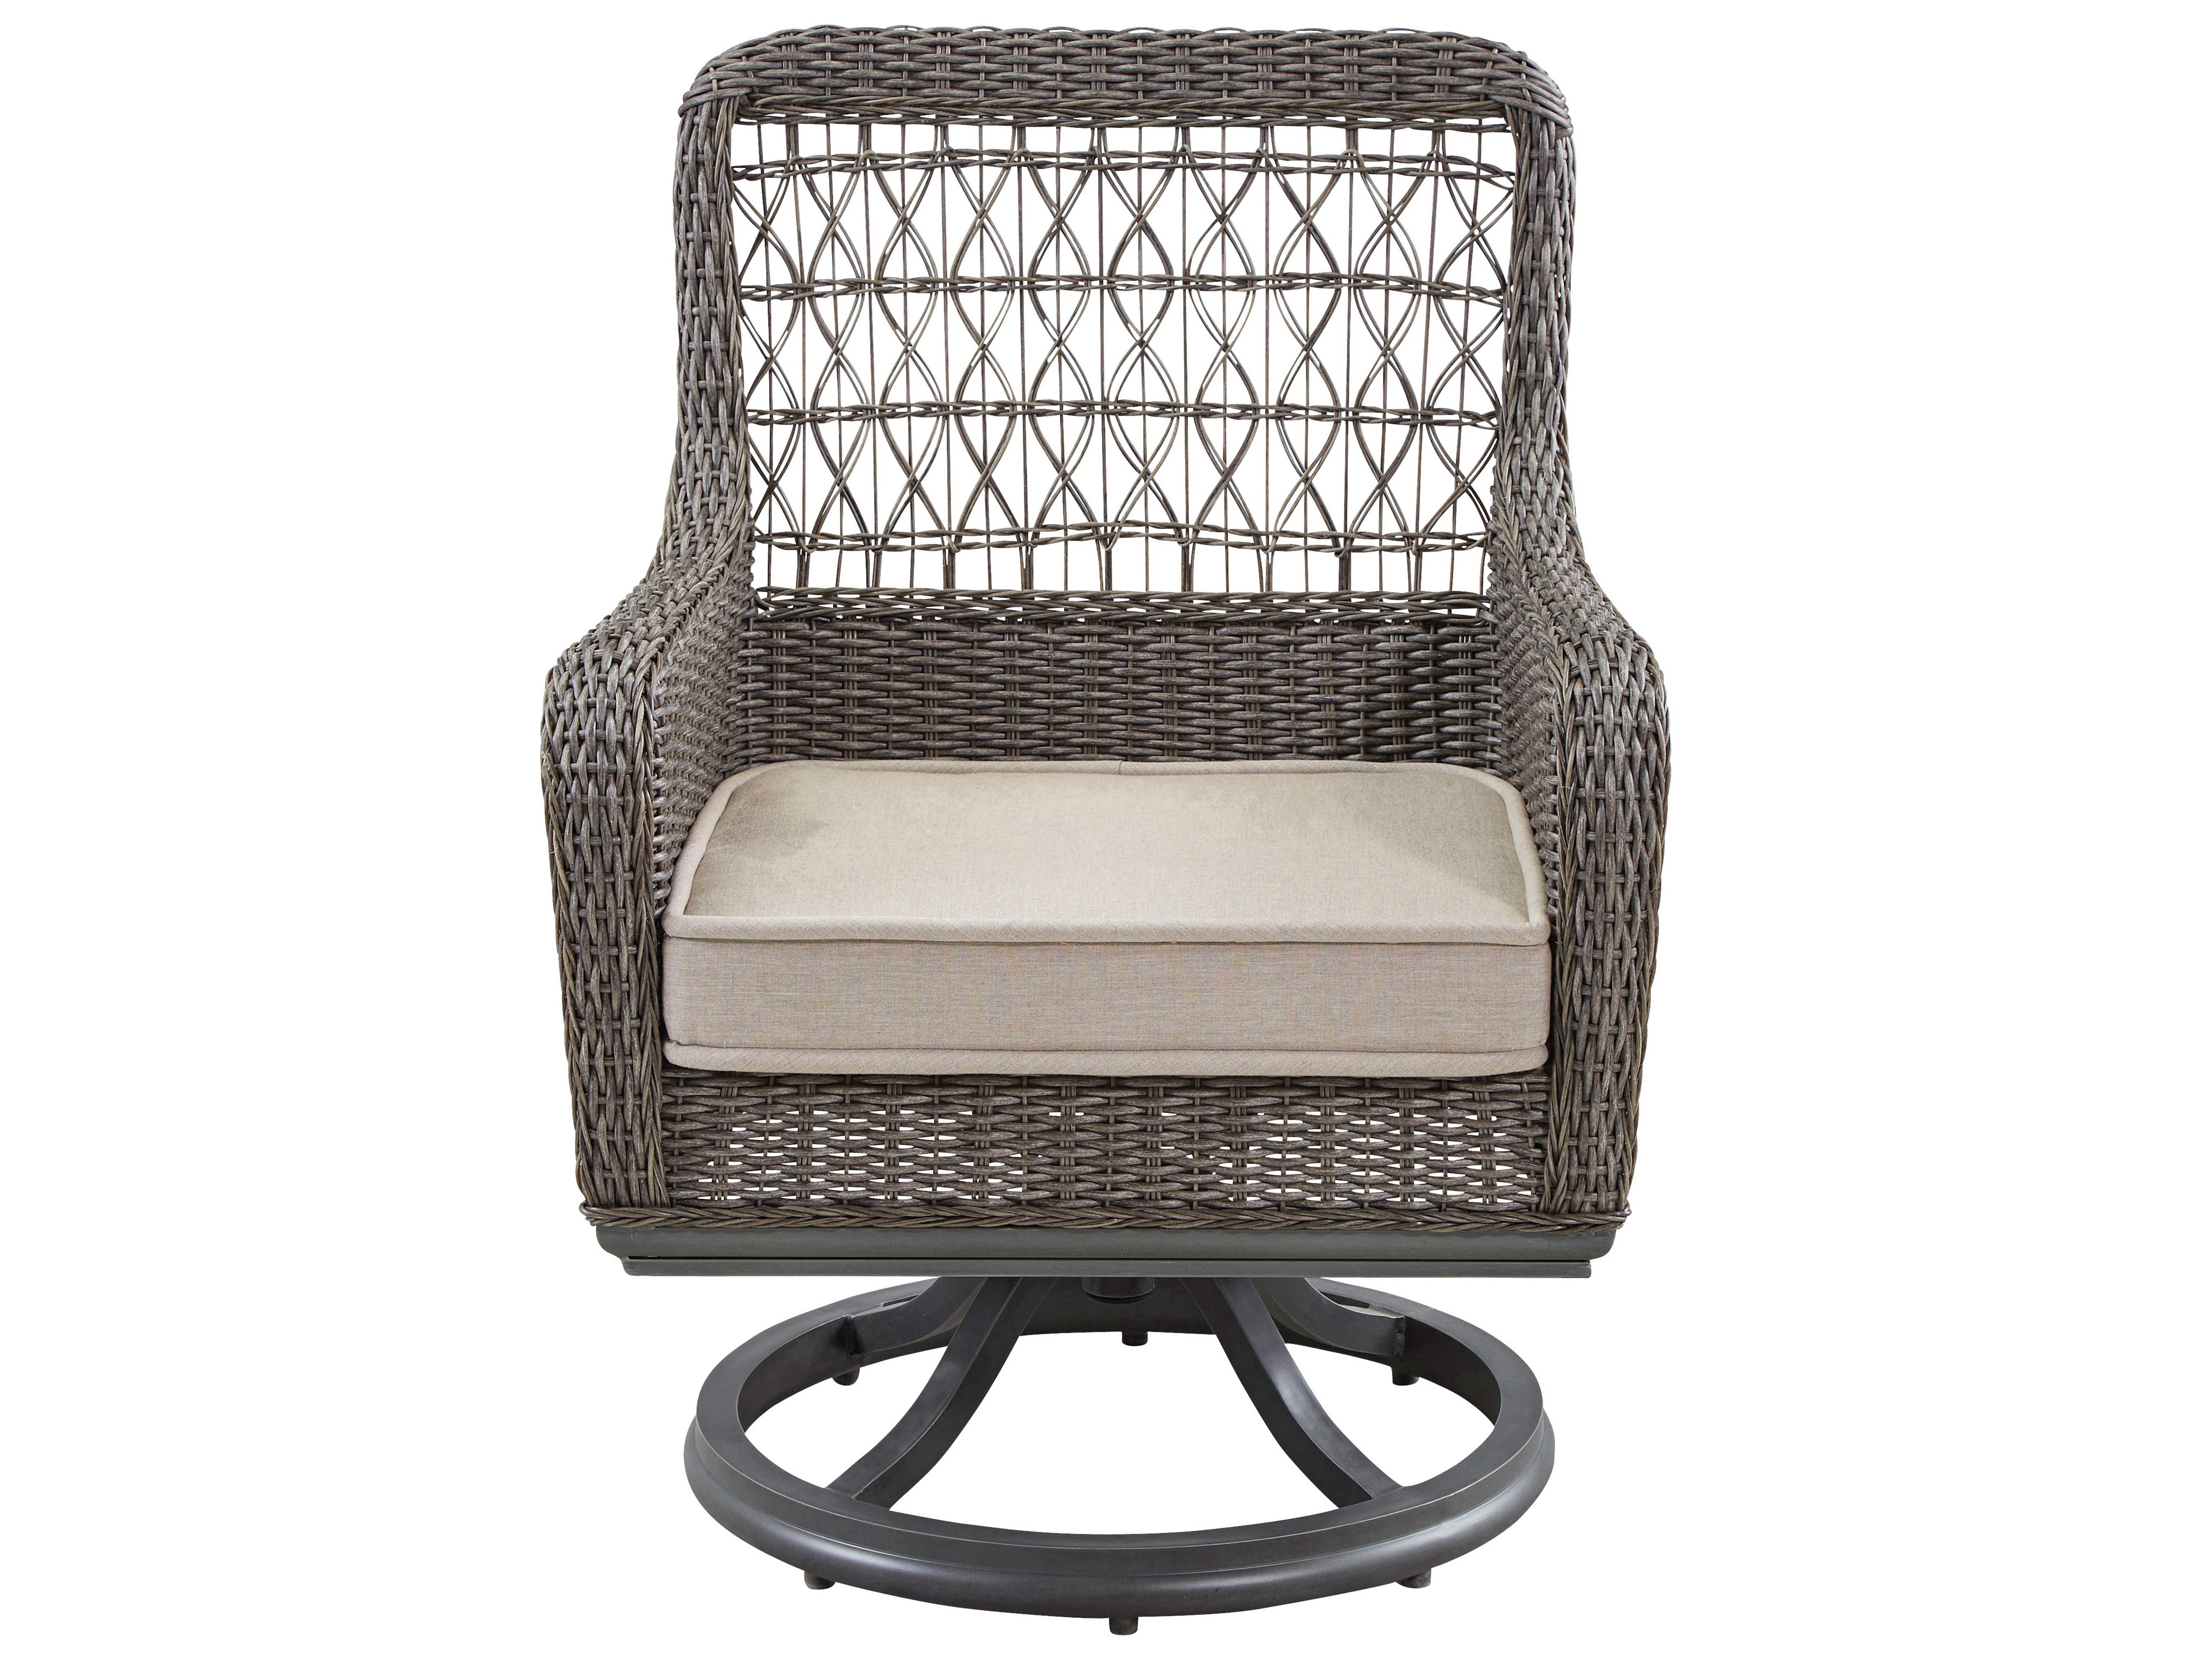 Cool Paula Deen Outdoor Dogwood Wicker Swivel Dining Chair Caraccident5 Cool Chair Designs And Ideas Caraccident5Info